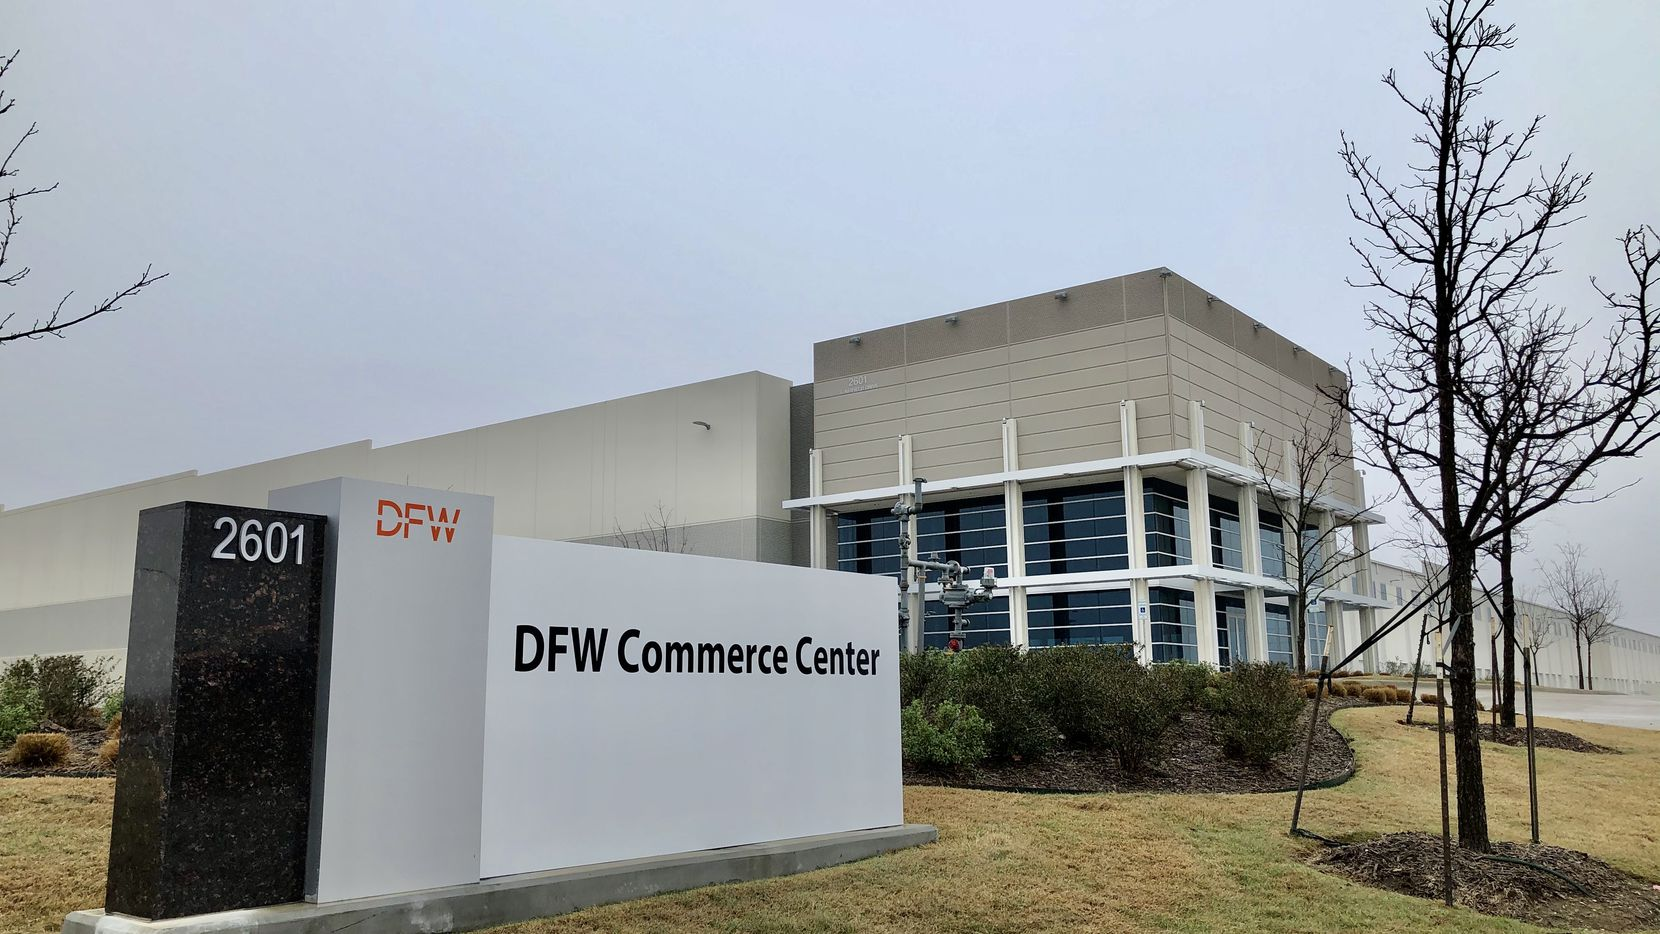 The DFW Commerce Center building is near the south end of DFW Airport.